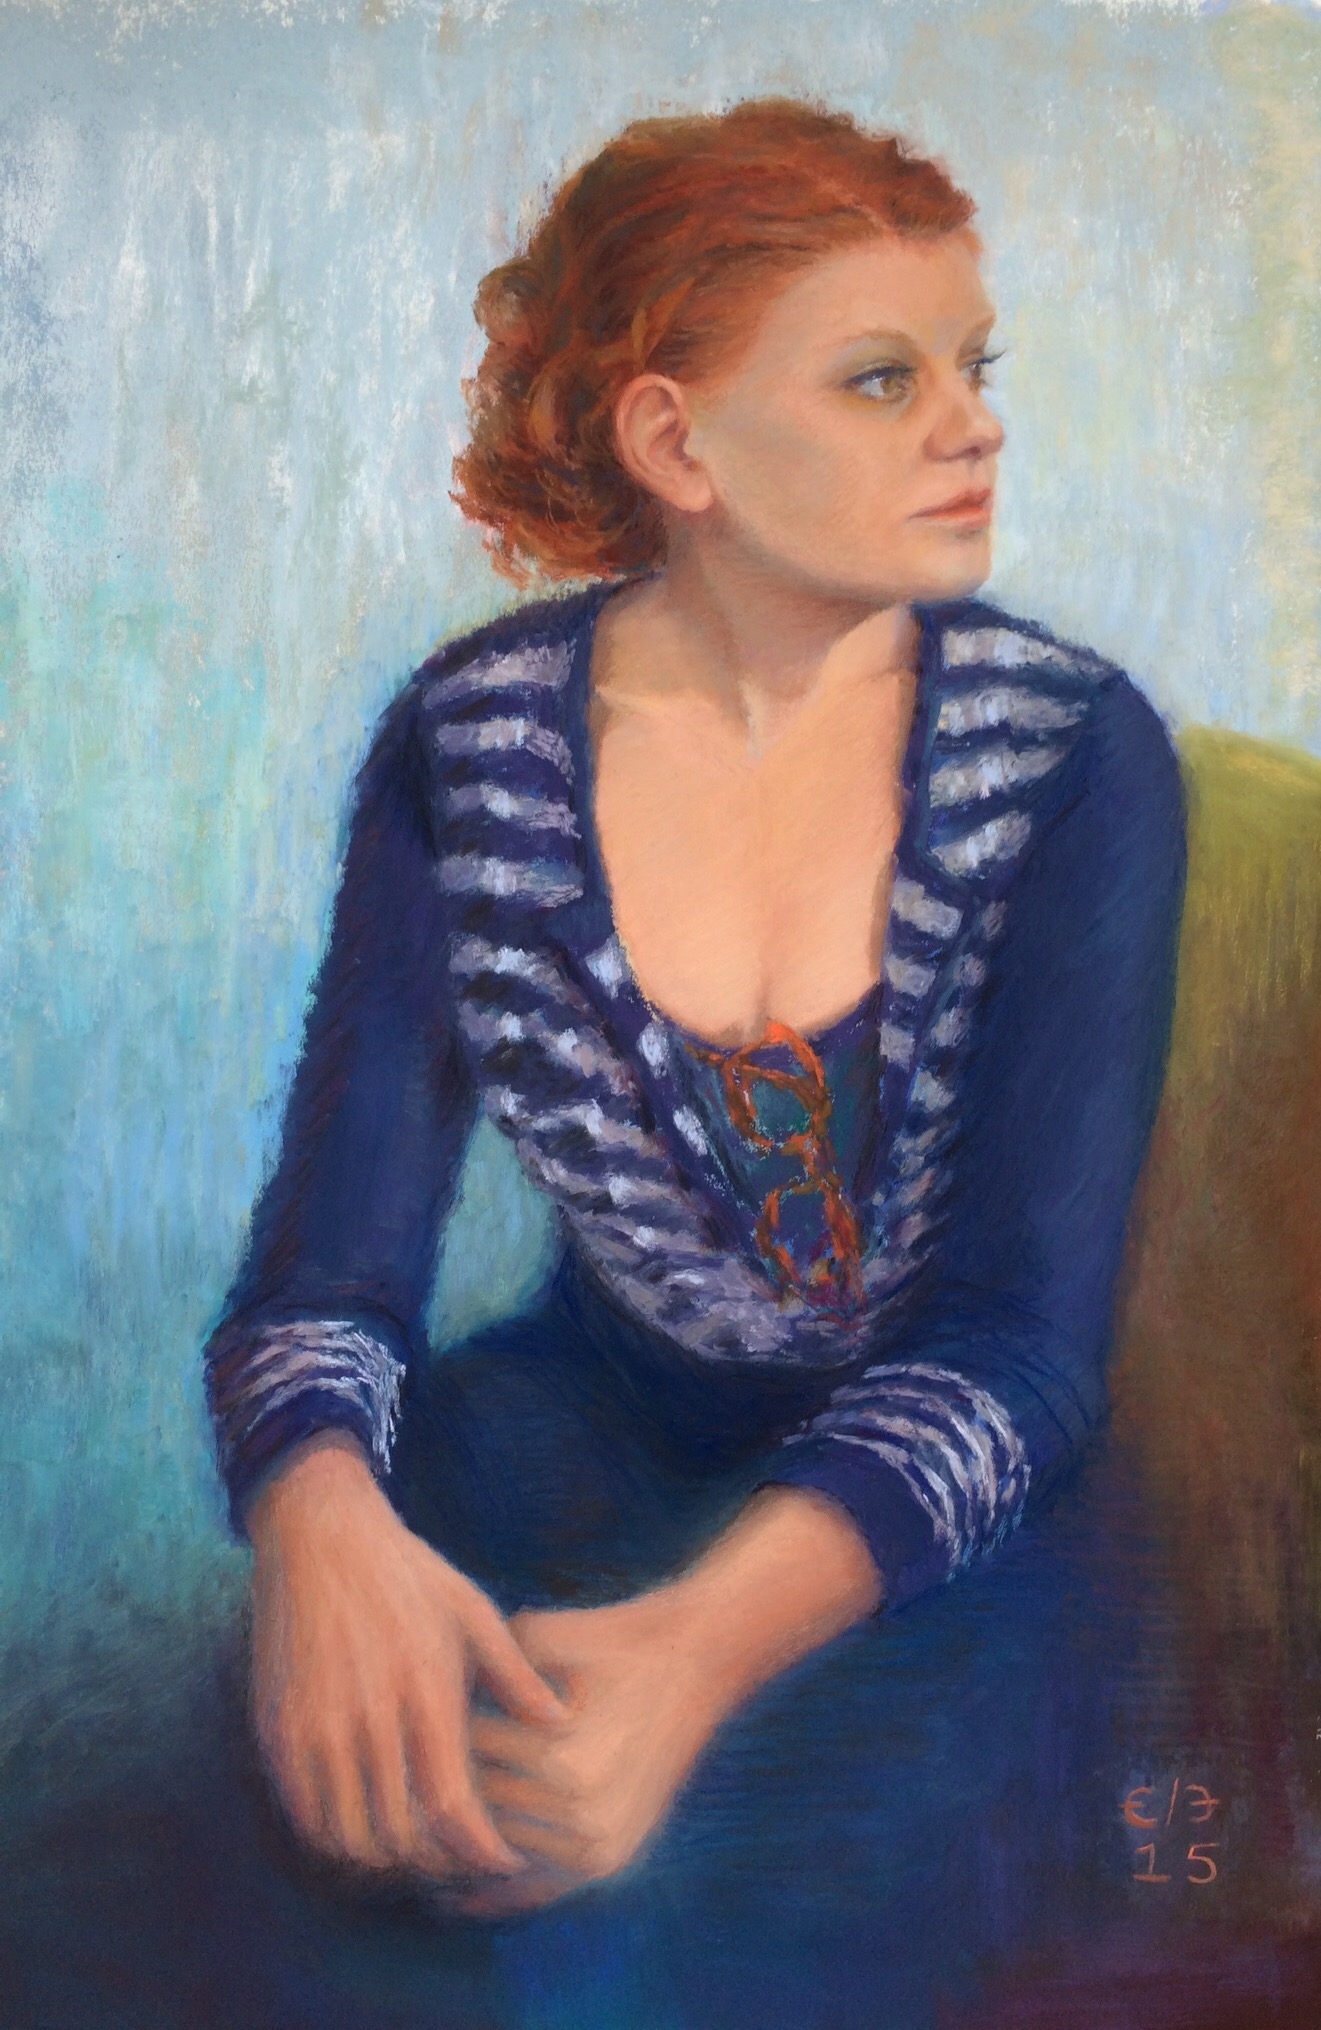 The Comedienne (2015) [Private Collection]